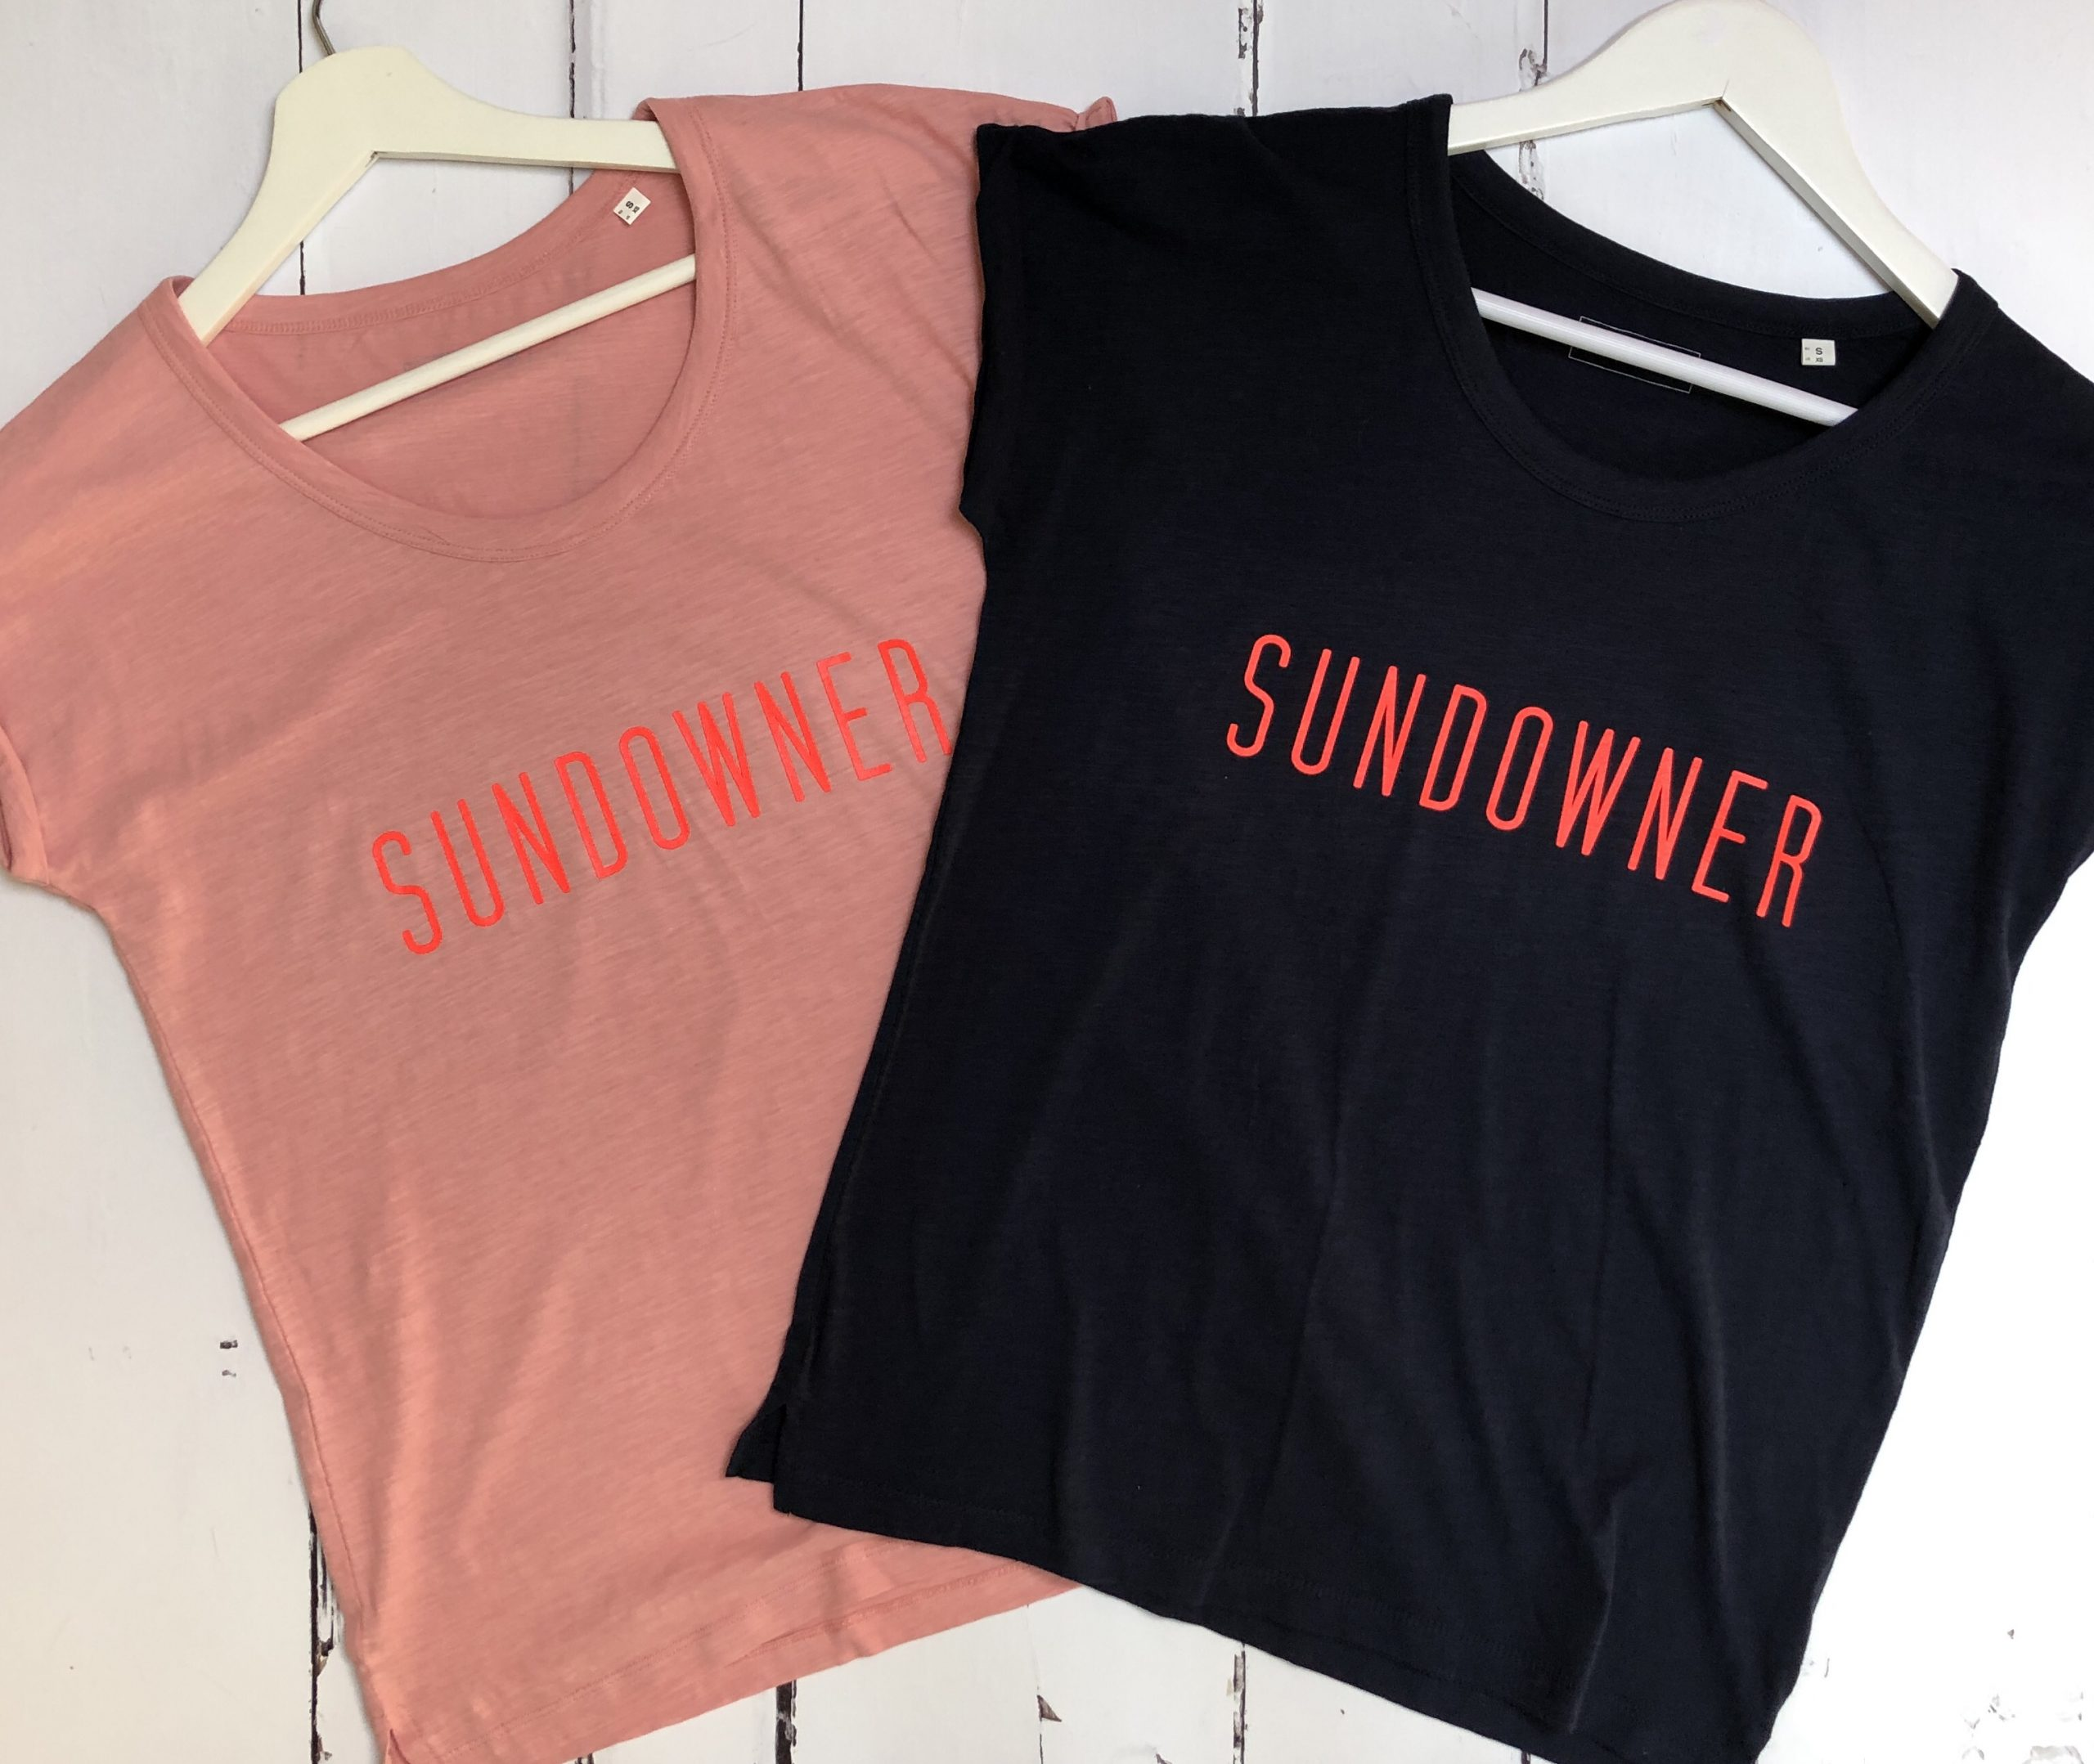 FWP by Rae Sundowner T-shirt £29